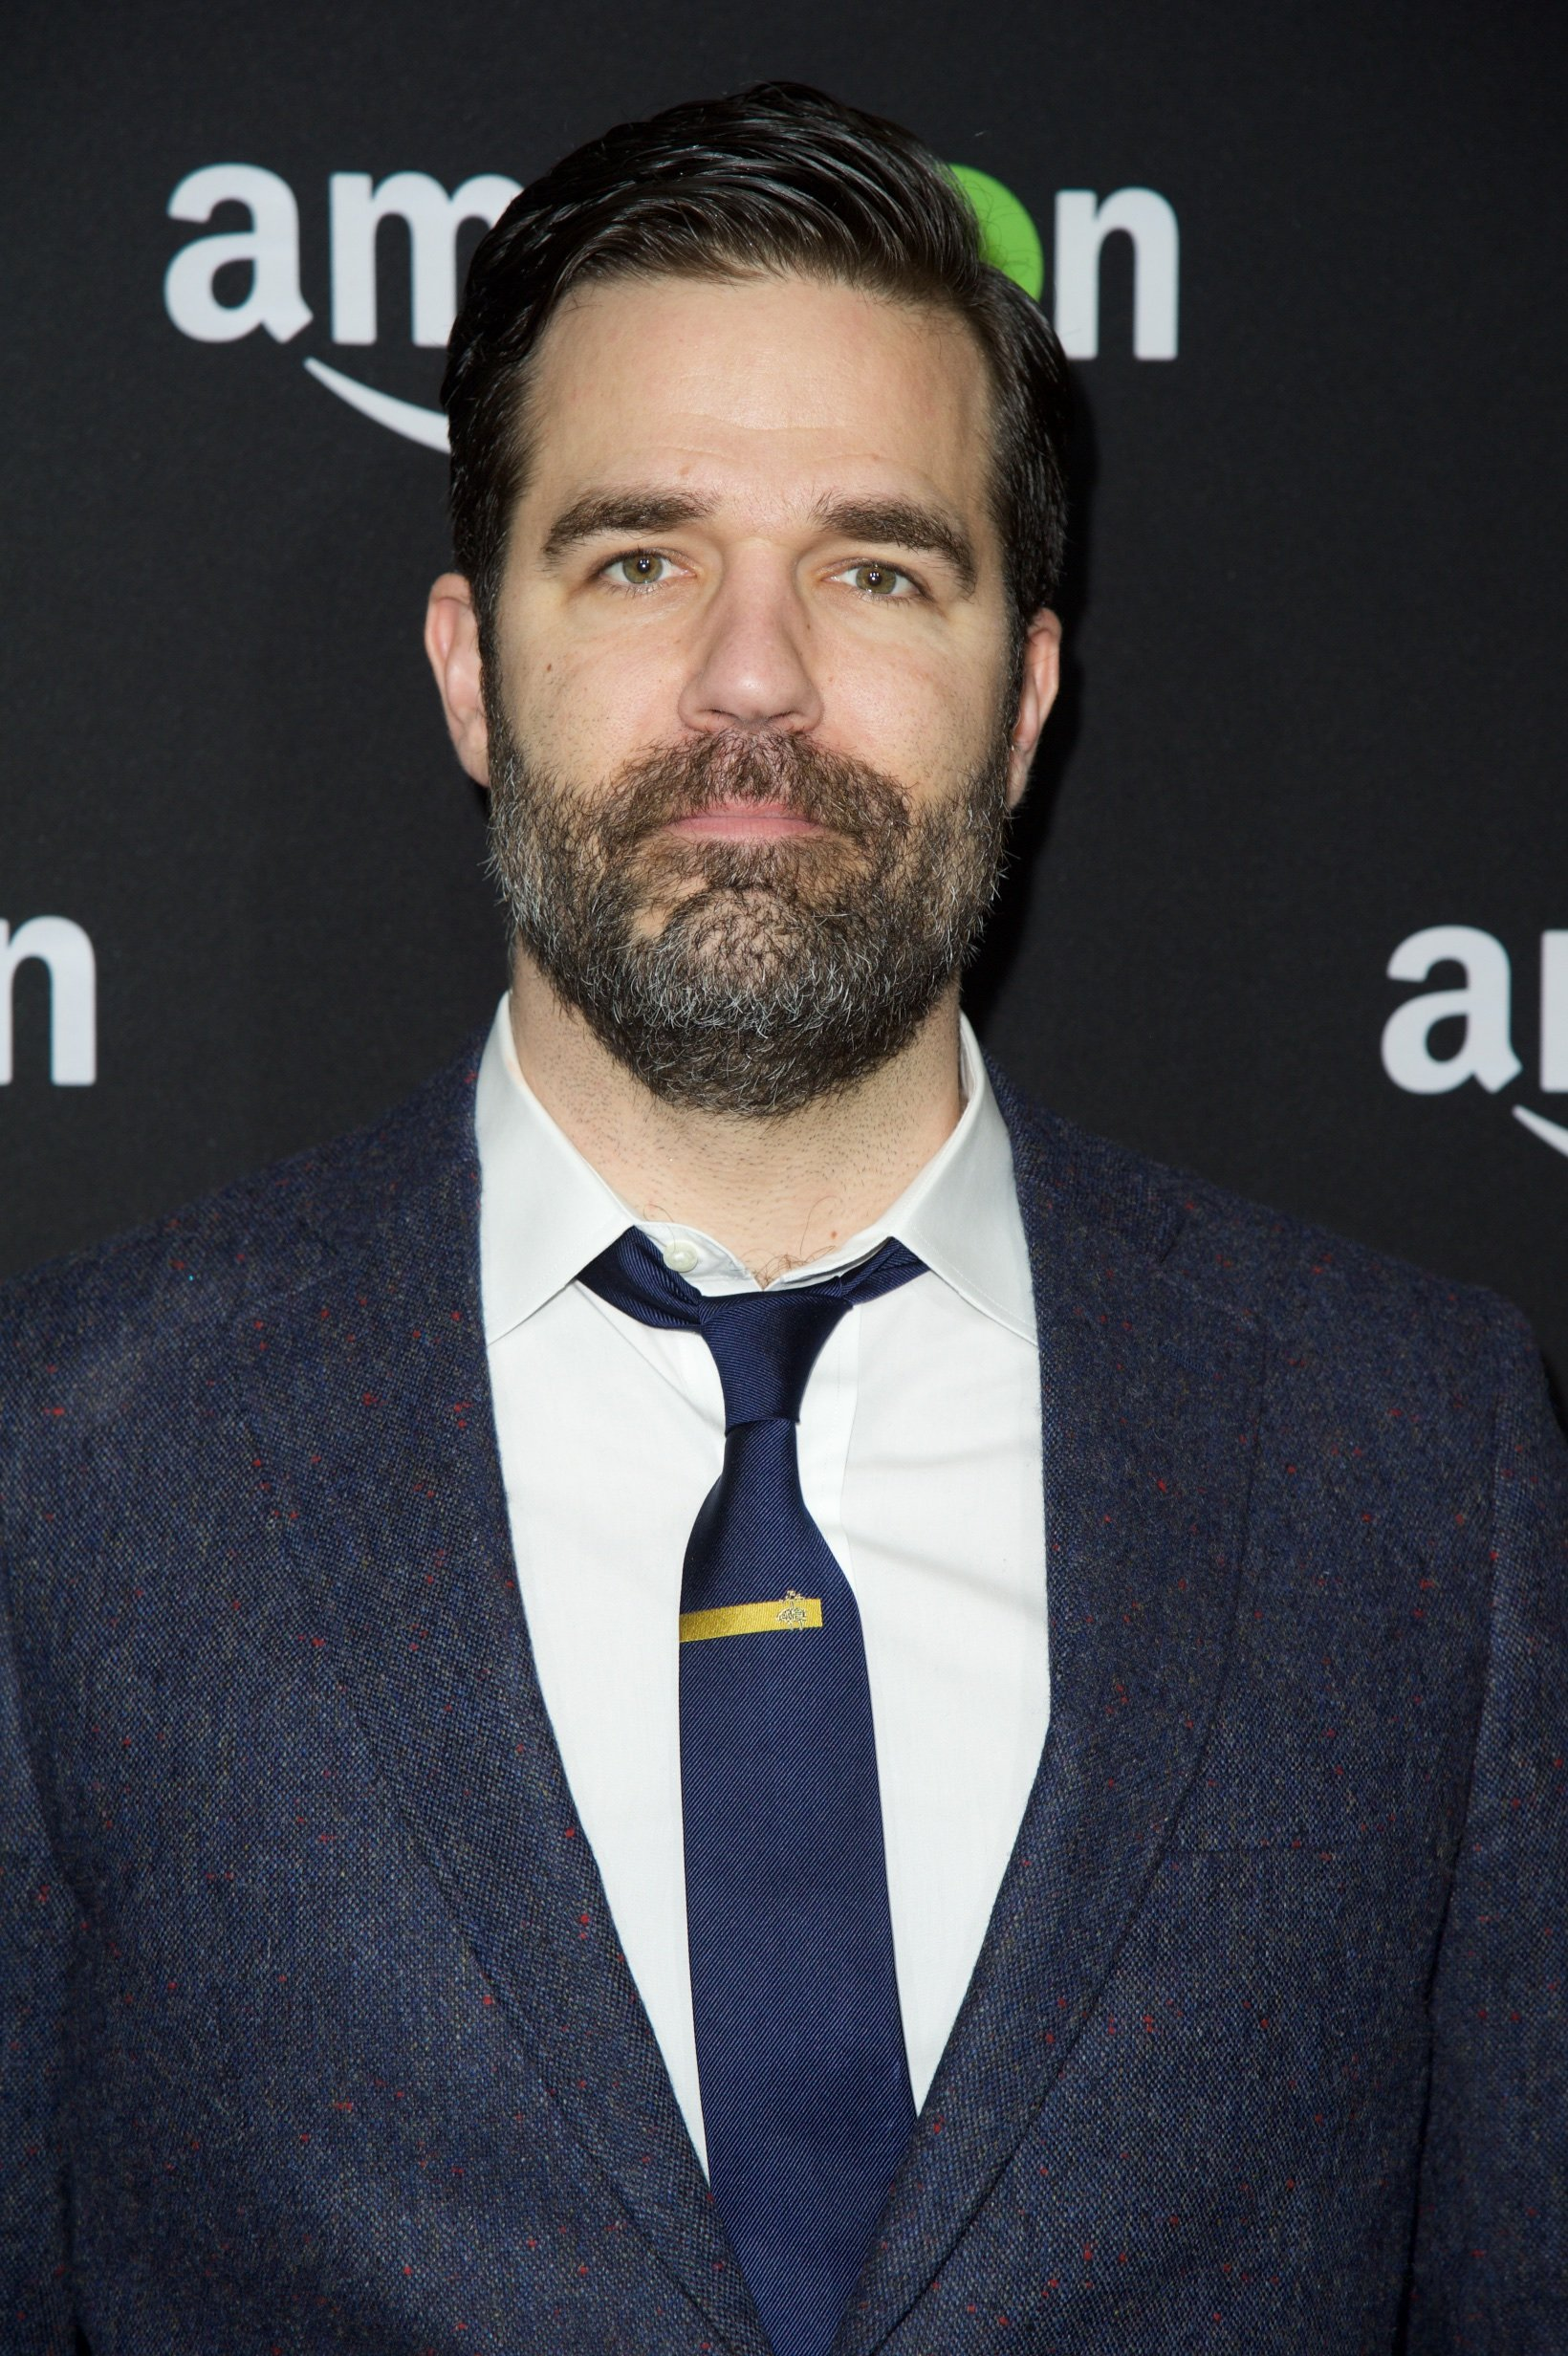 Rob Delaney at the Amazon Studios Golden Globes Party | Photo: Getty Images